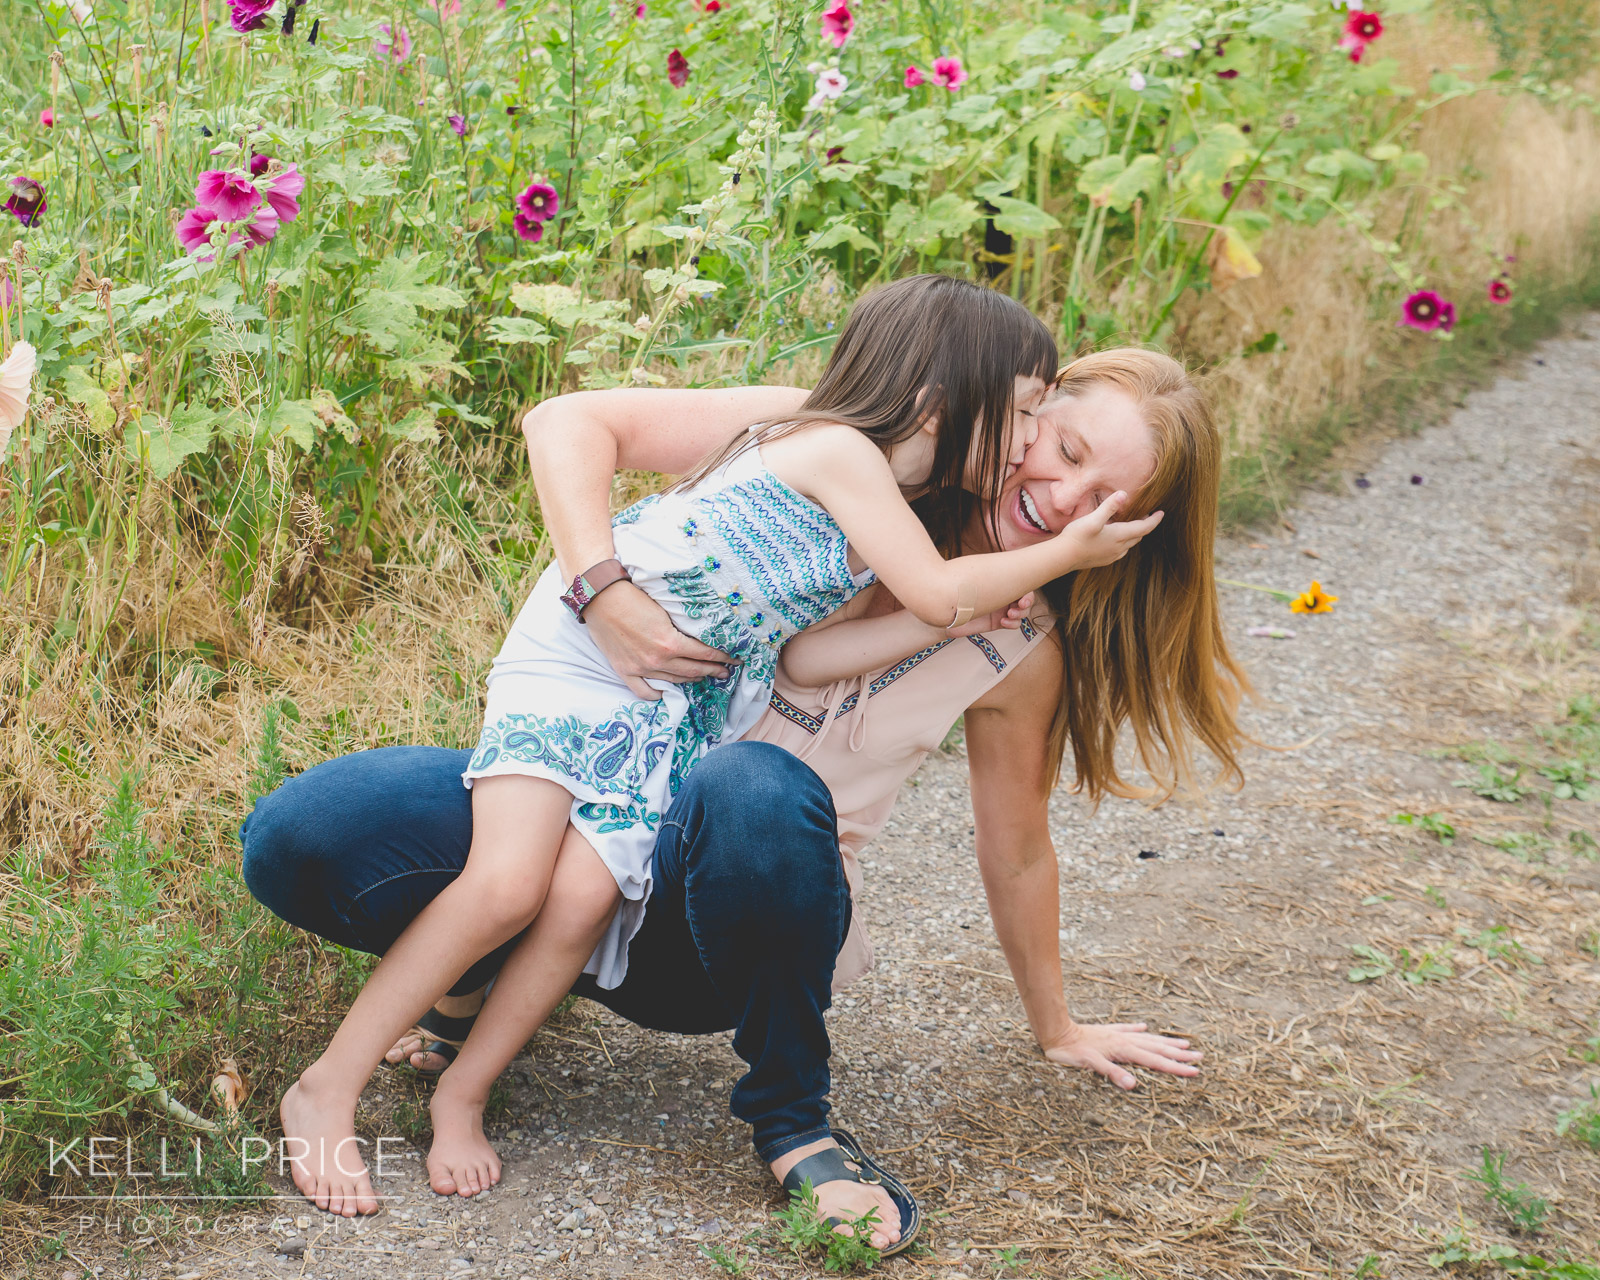 Bloopers17KelliPricePhotographyJuly2015.jpg